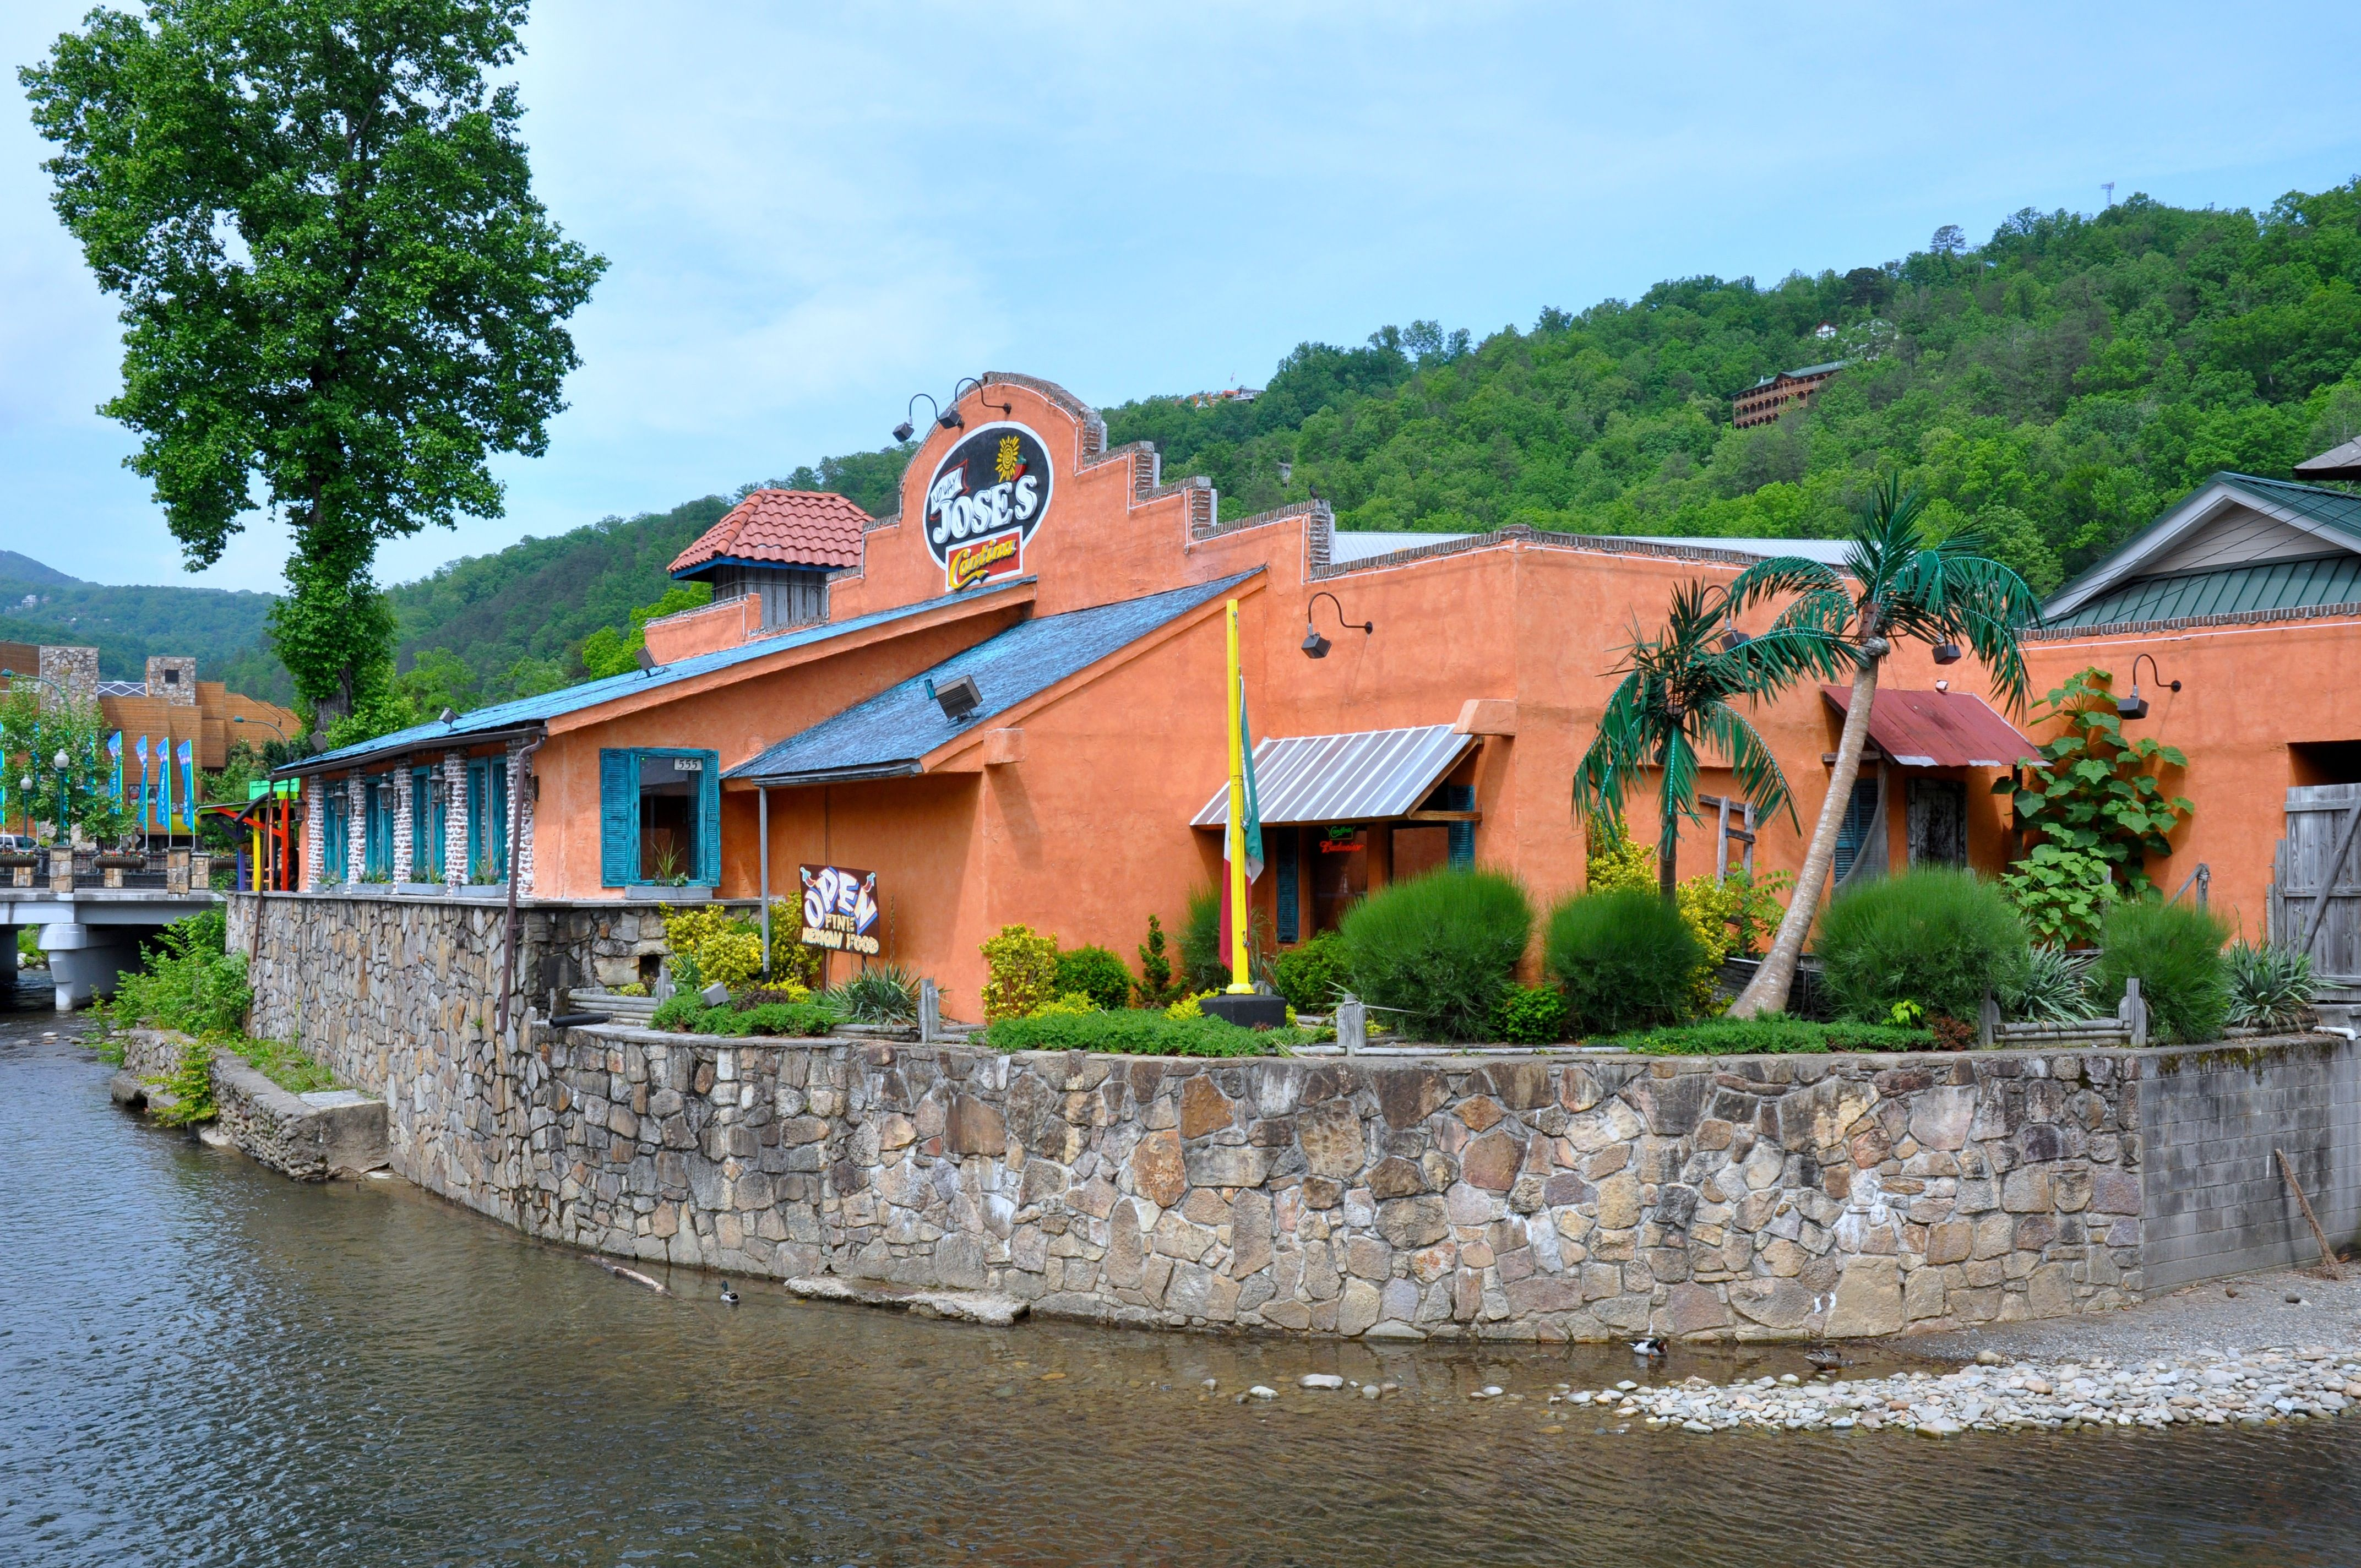 No Way Jose's Mexican Cantina - The food, the location and the atmosphere are just perfect!